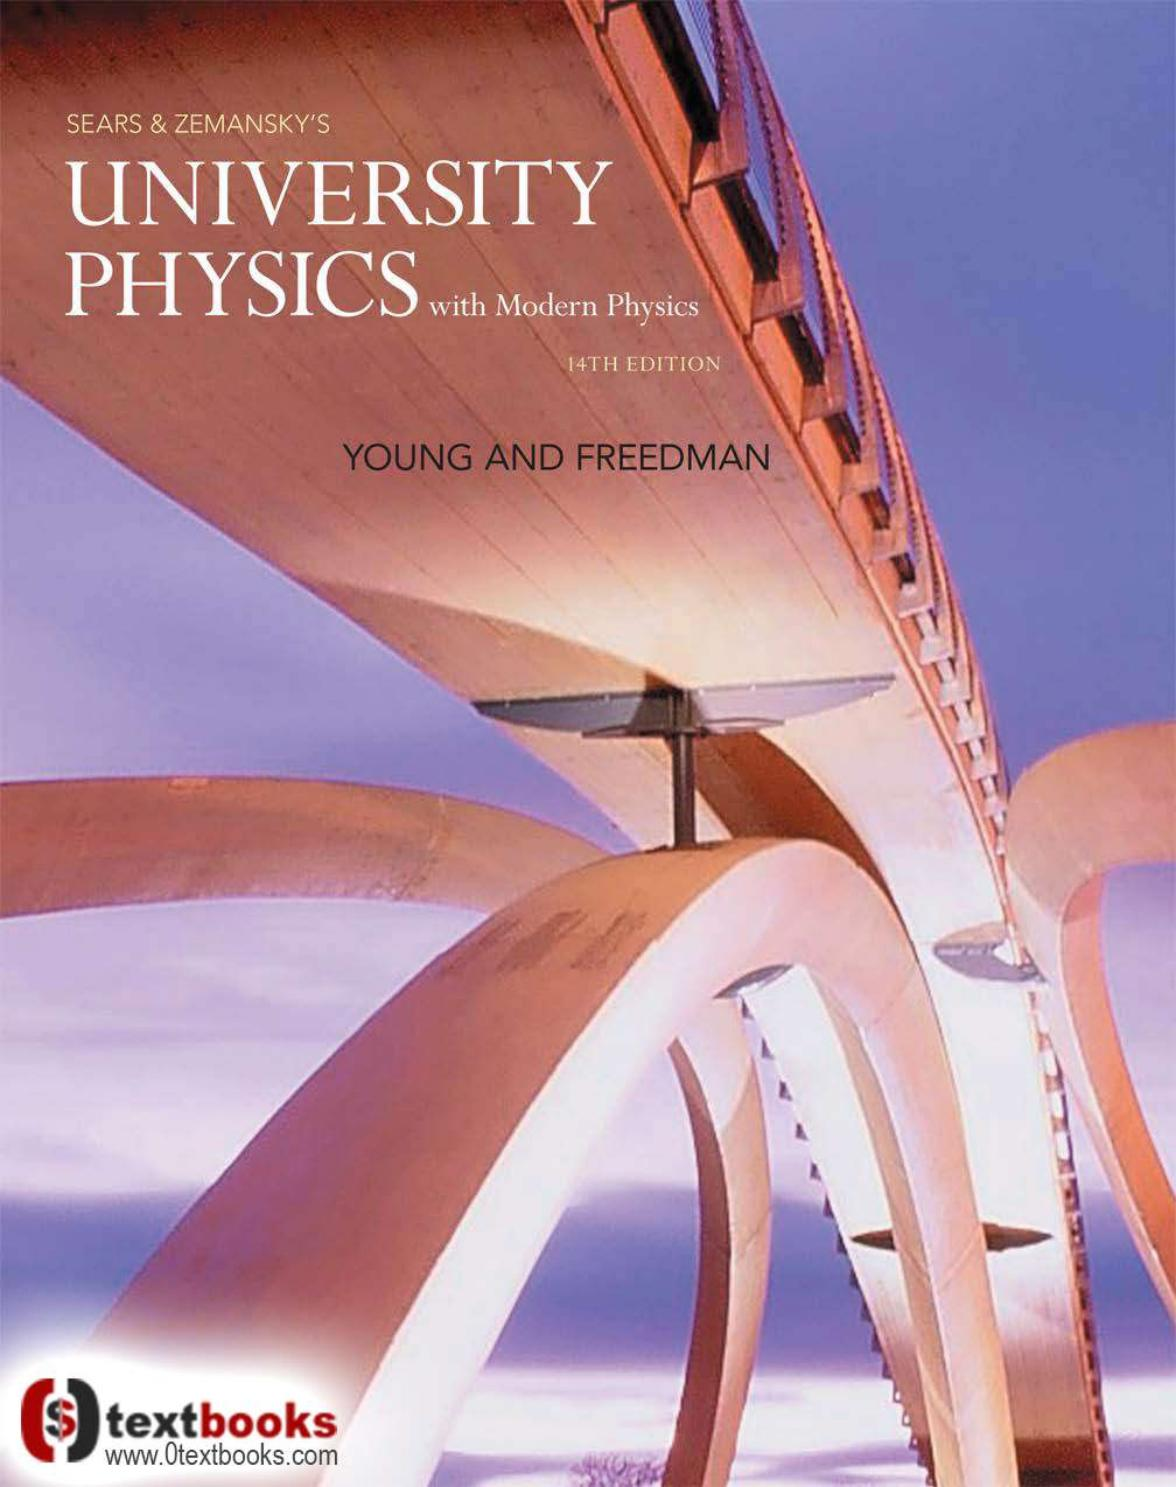 University Physics With Modern Physics 14th Edition Pdf By